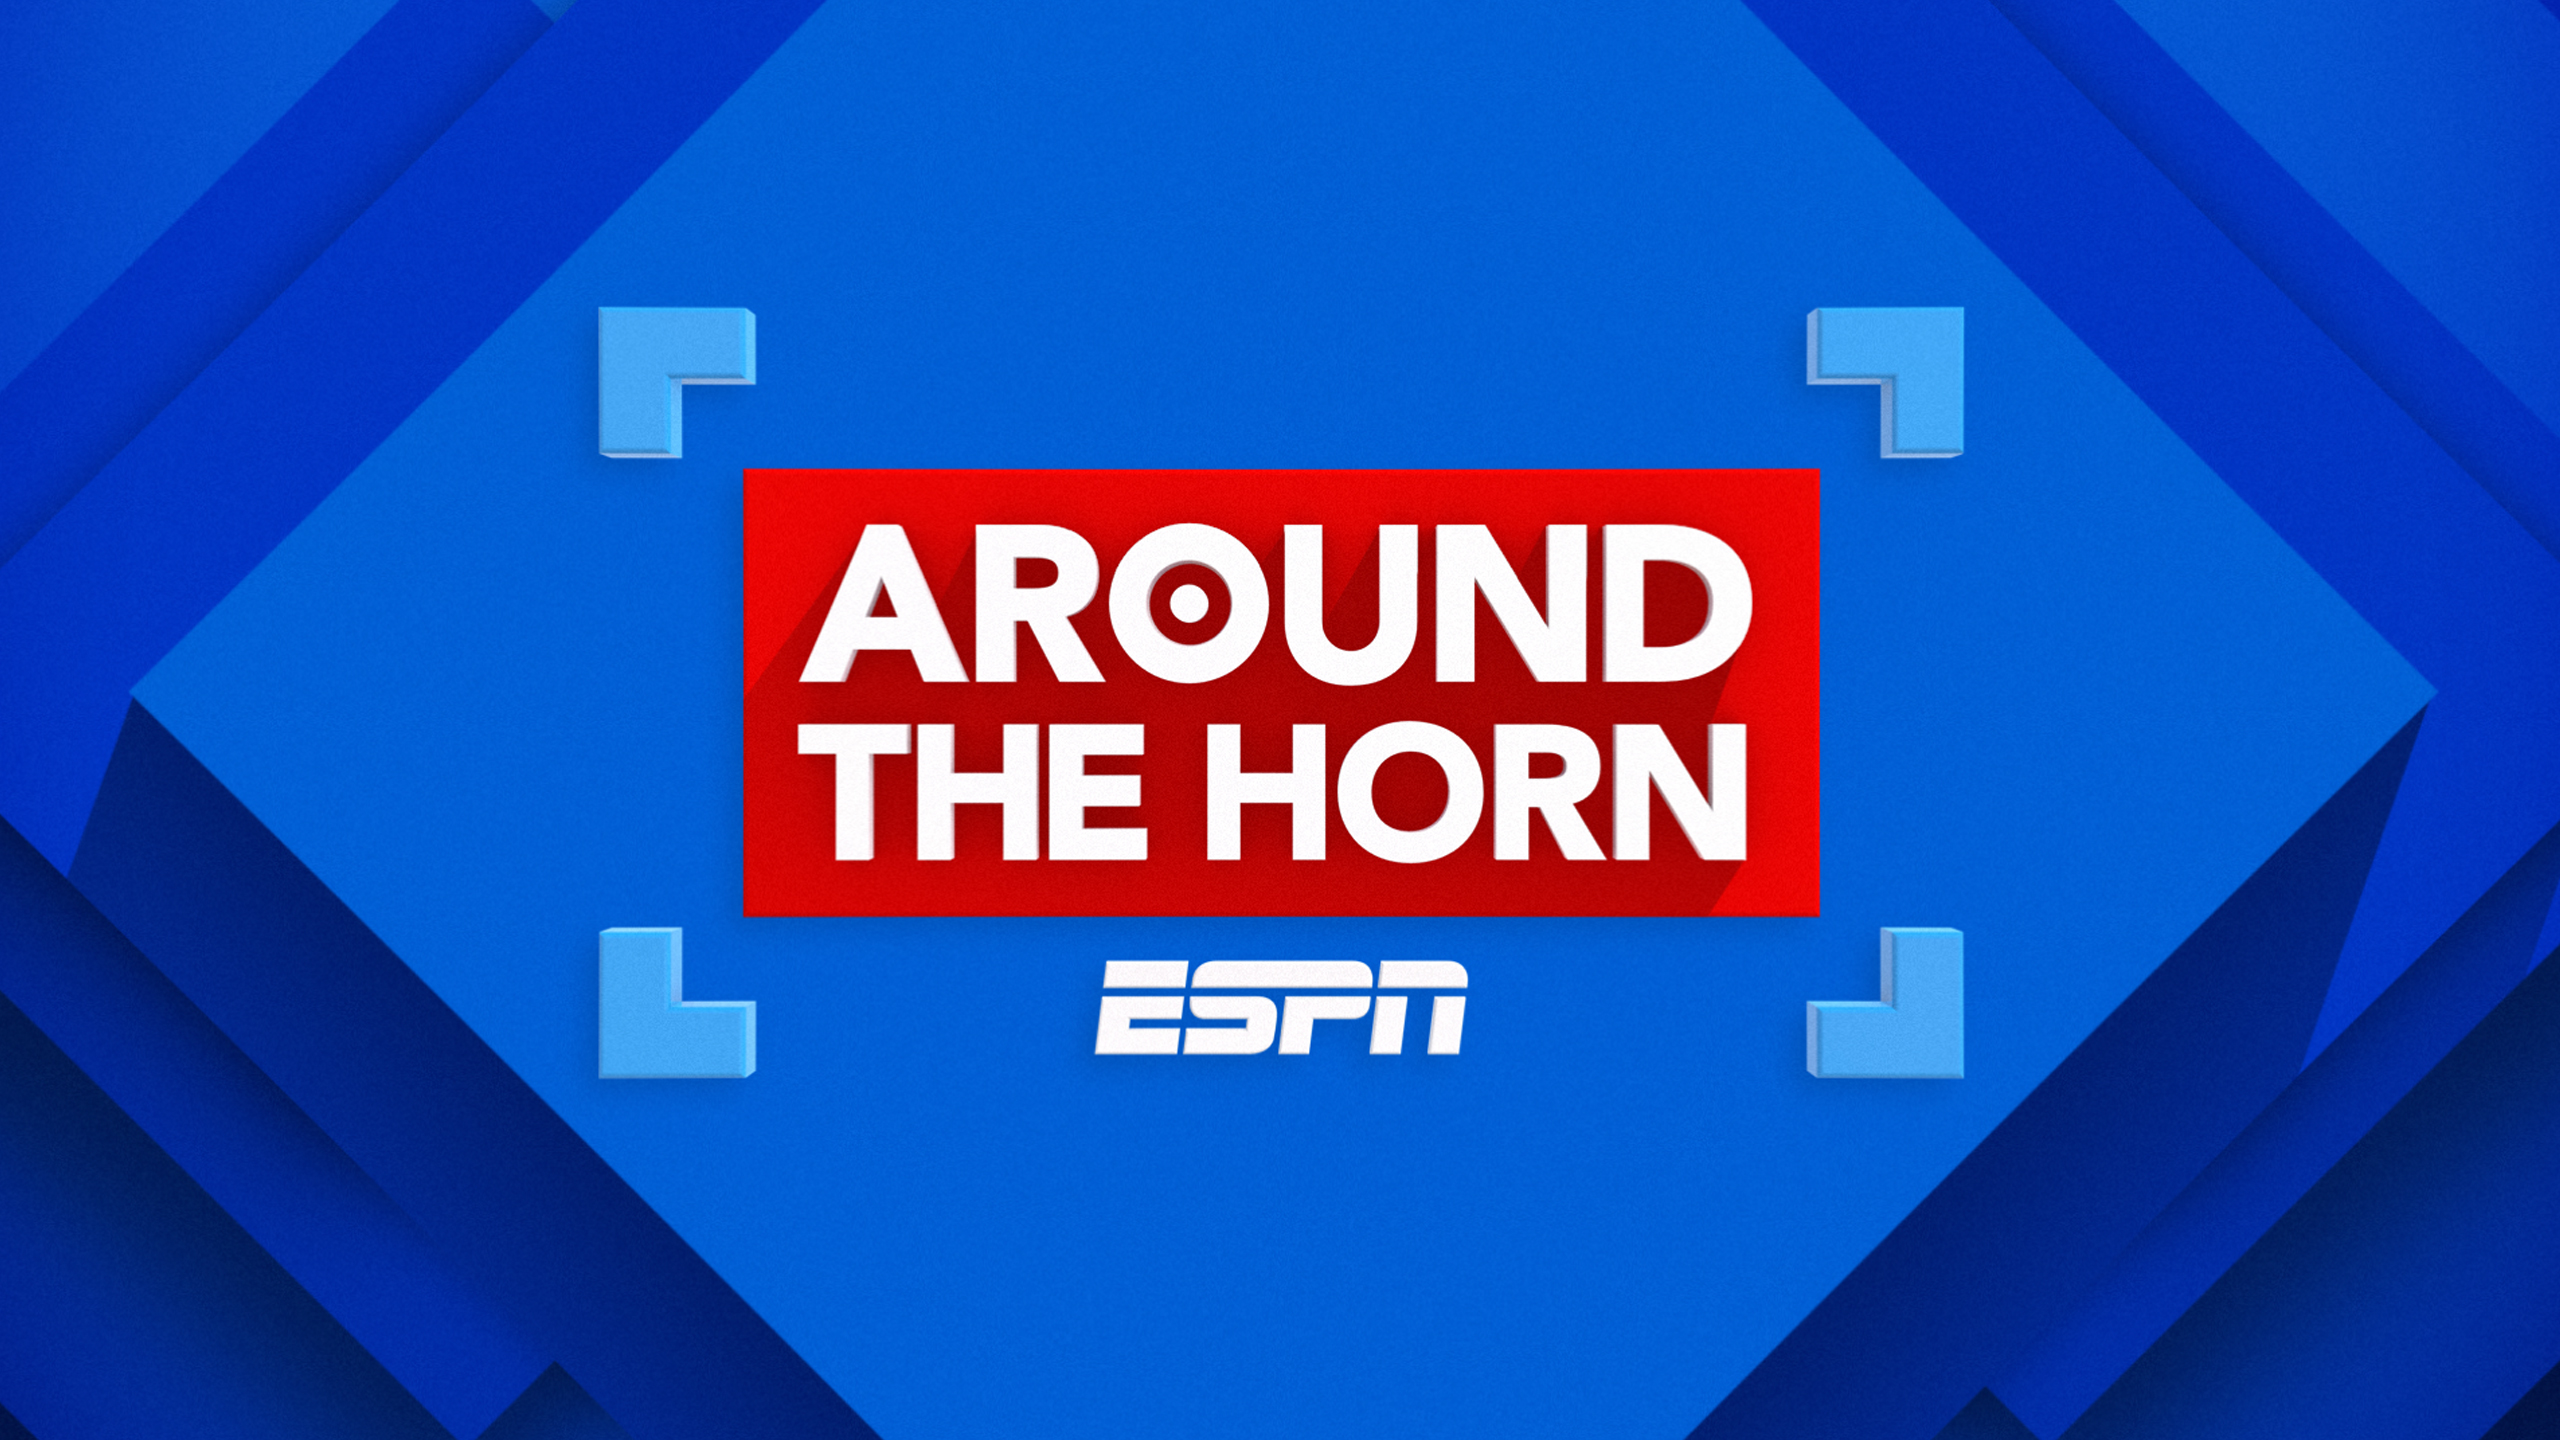 Mon, 10/15 - Around The Horn